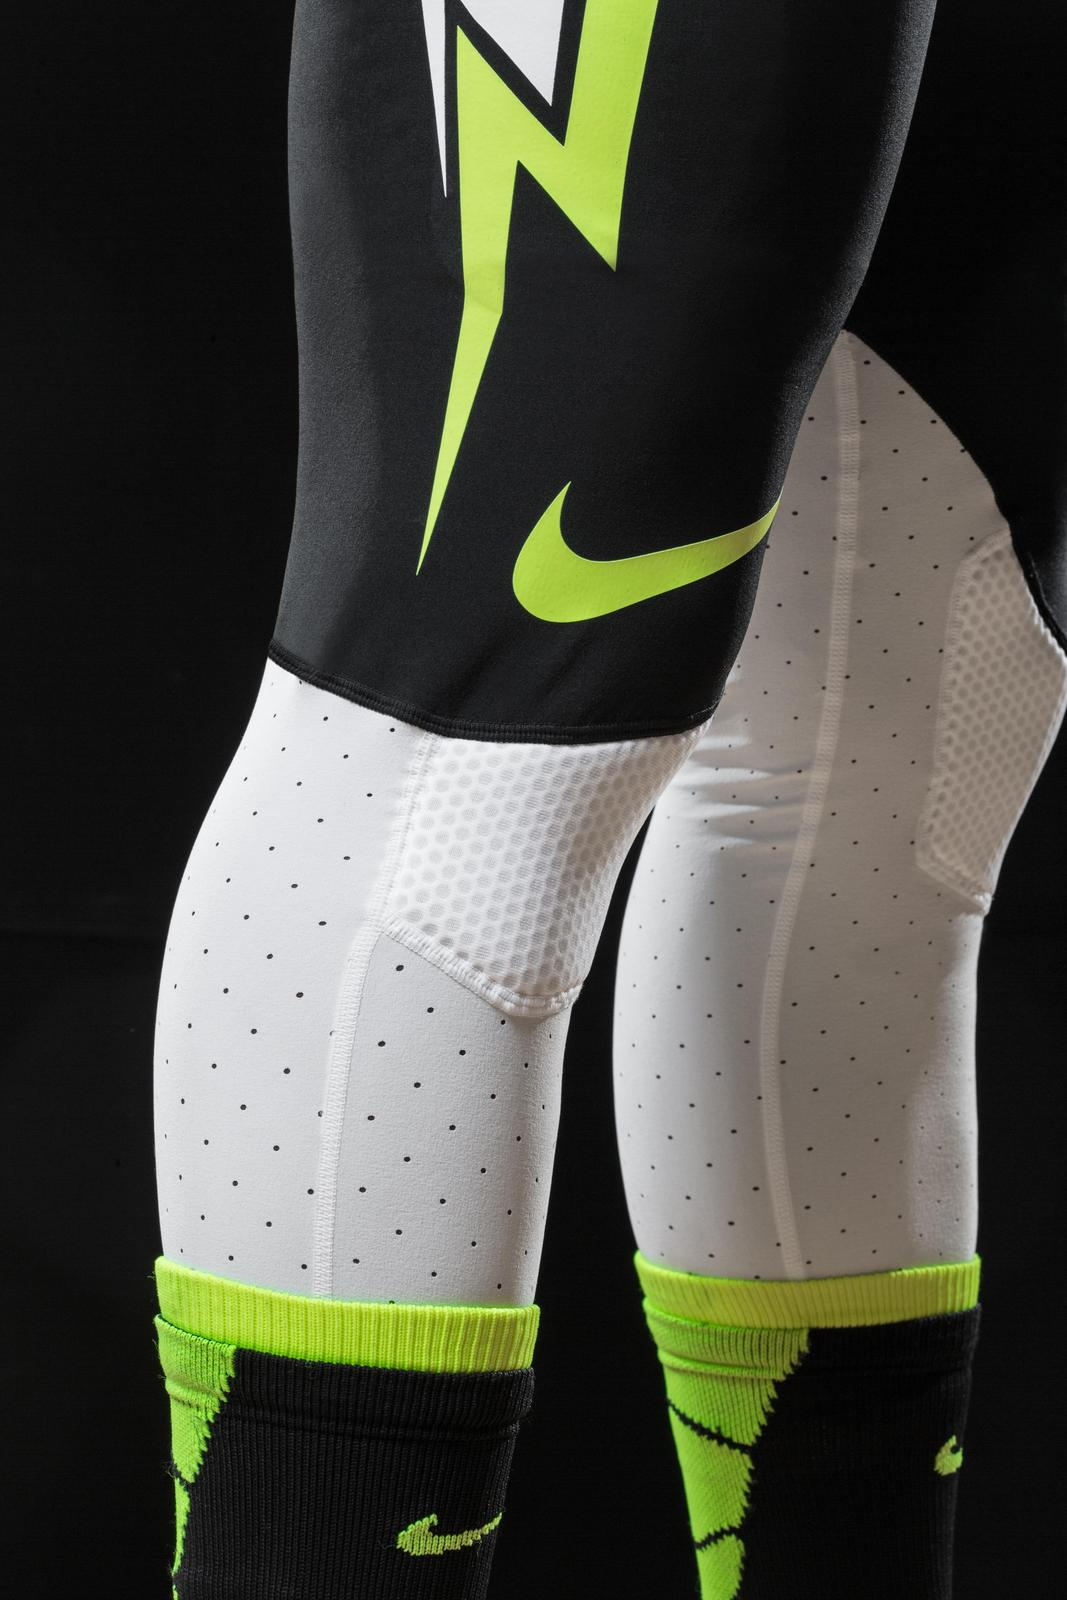 Nike Vapor Speed Football Uniform Unveiled Nike News